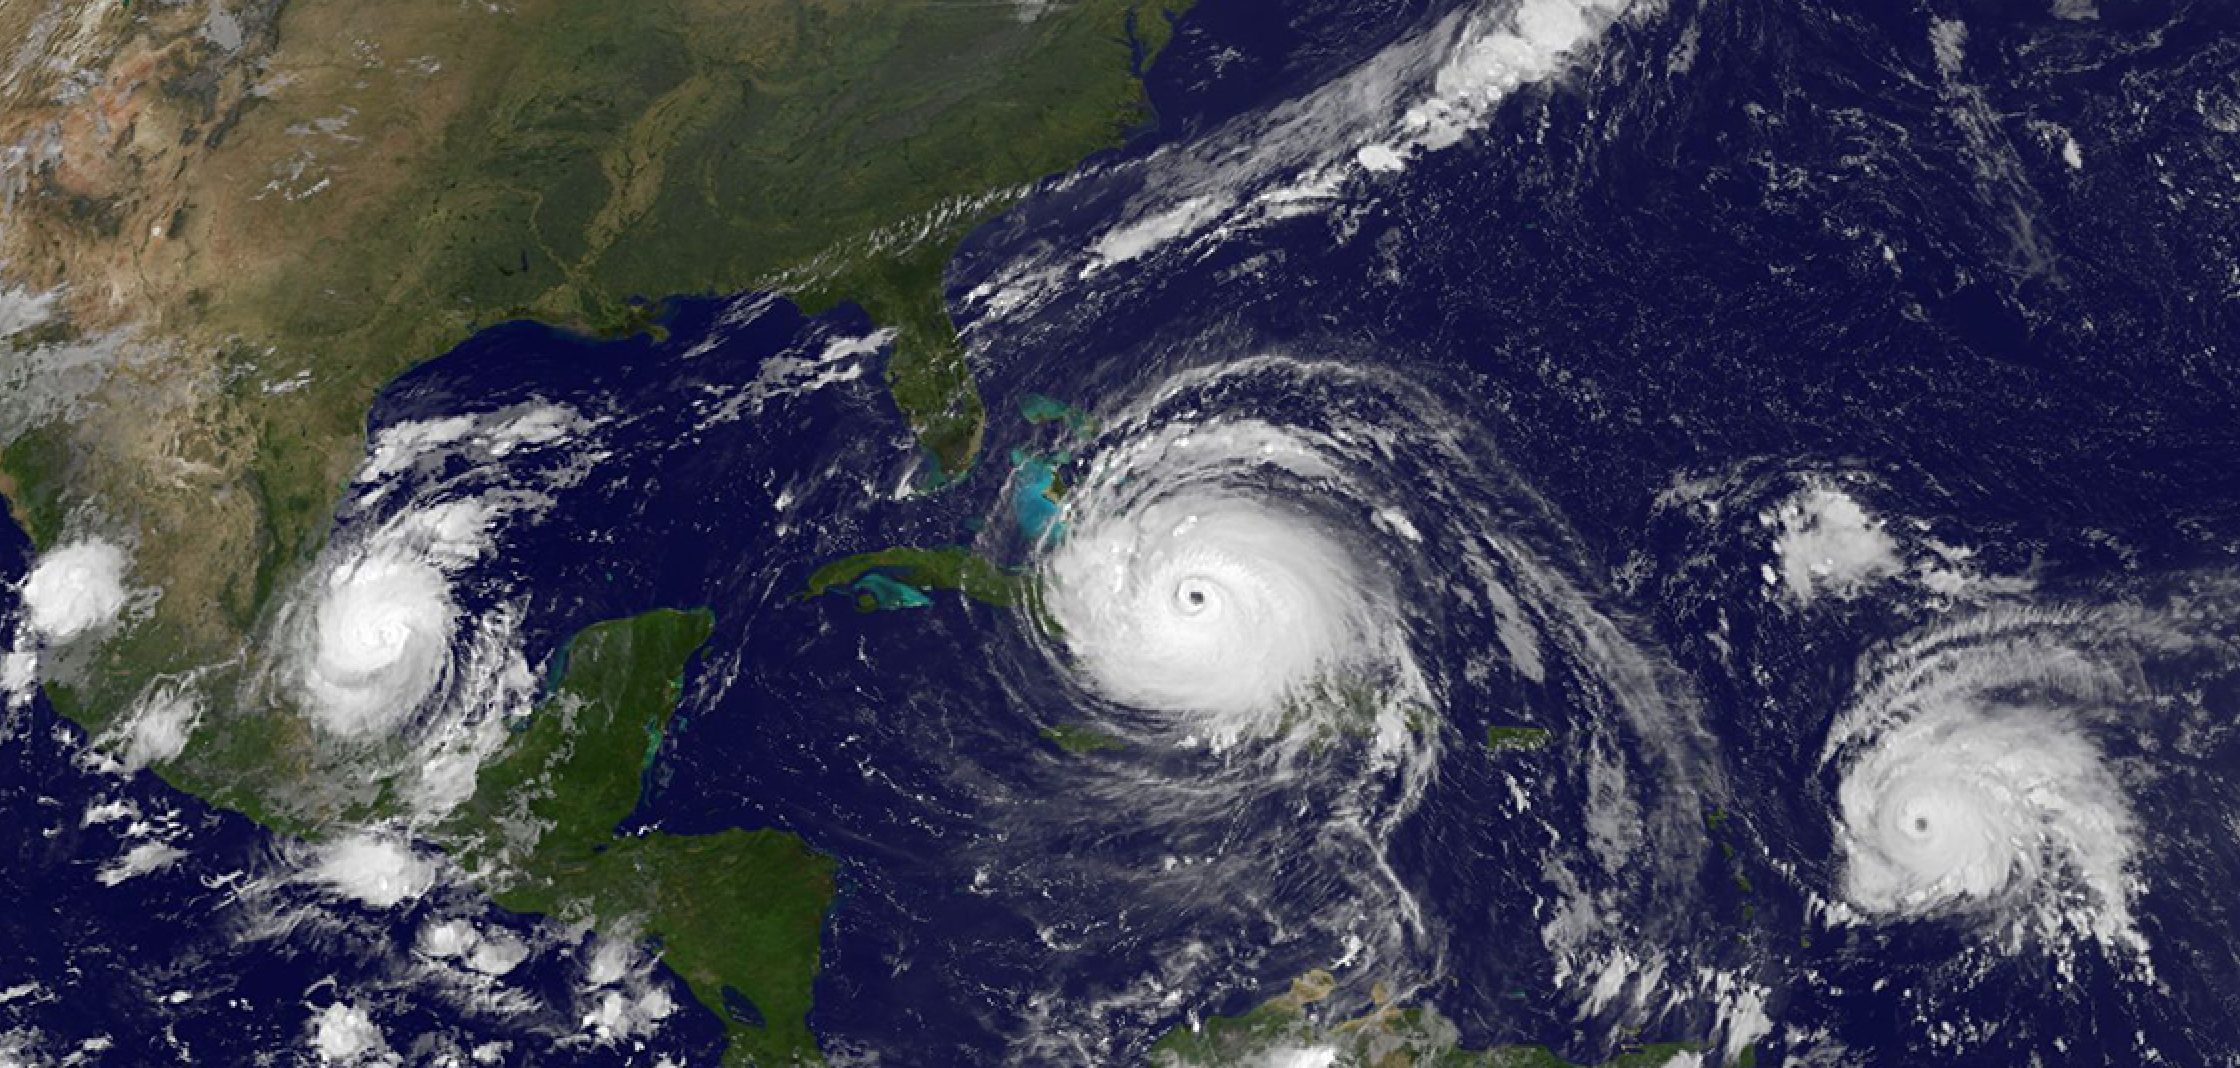 History Shows Quiet Or Active Hurricane Phases Doesn T Equal More Or Less Landfalls